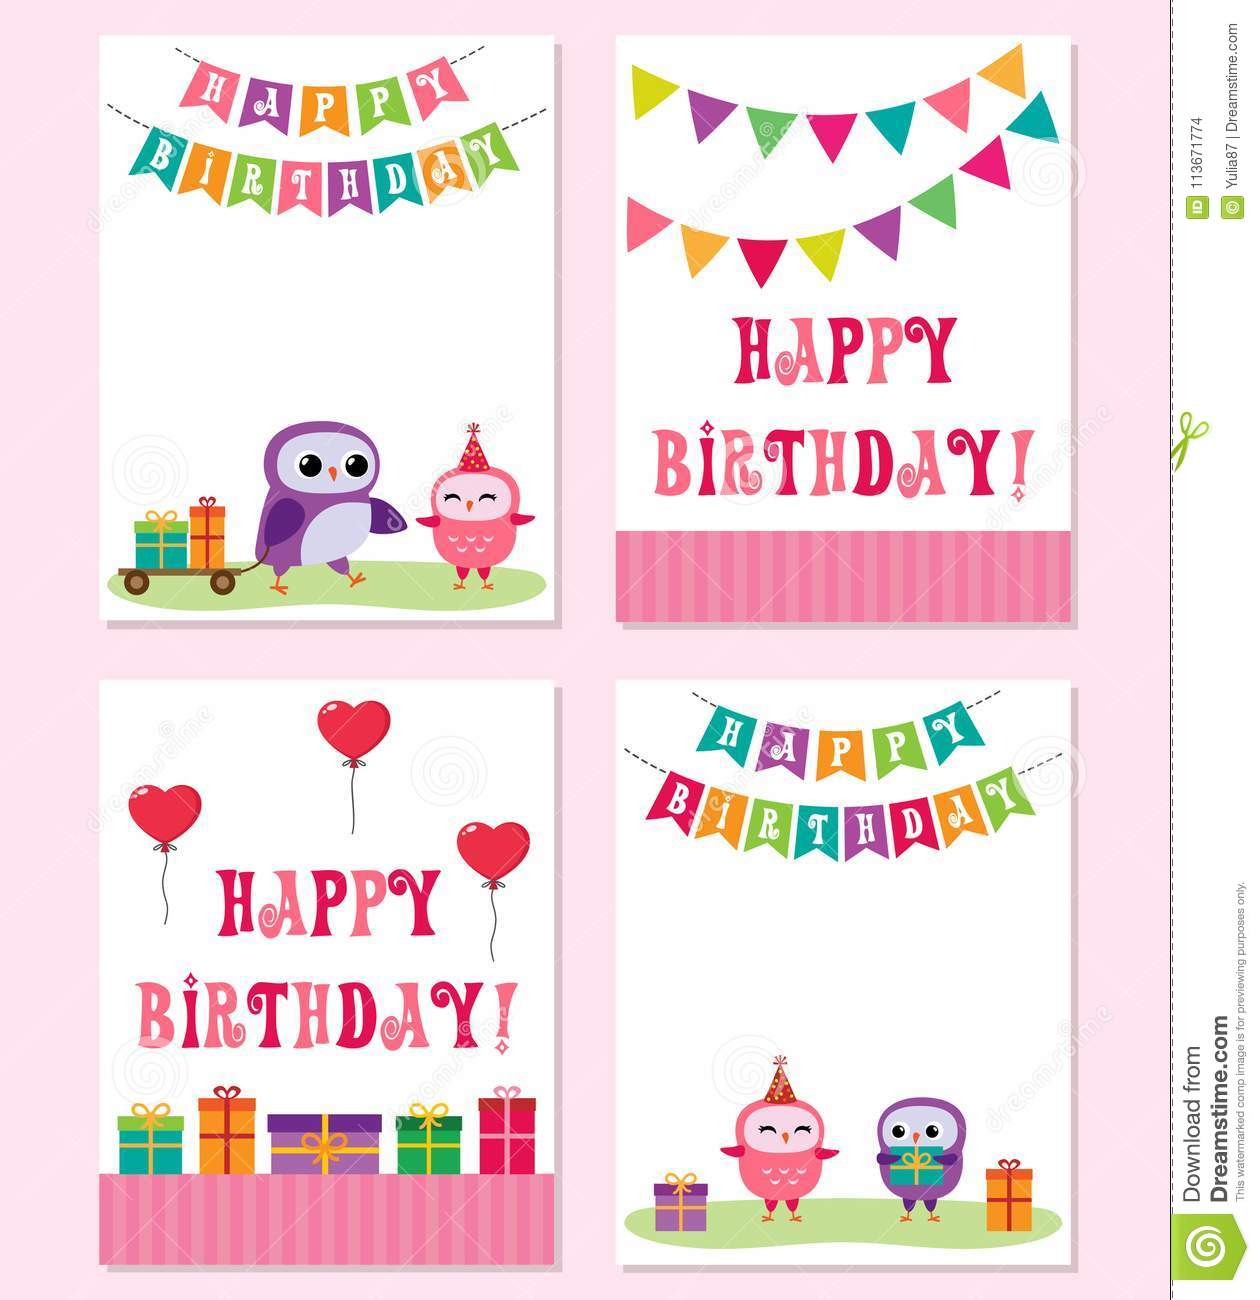 Birthday Cards With Cute Owls Vector Editable Templates For Party Invitation Or Postcard In Pink Color